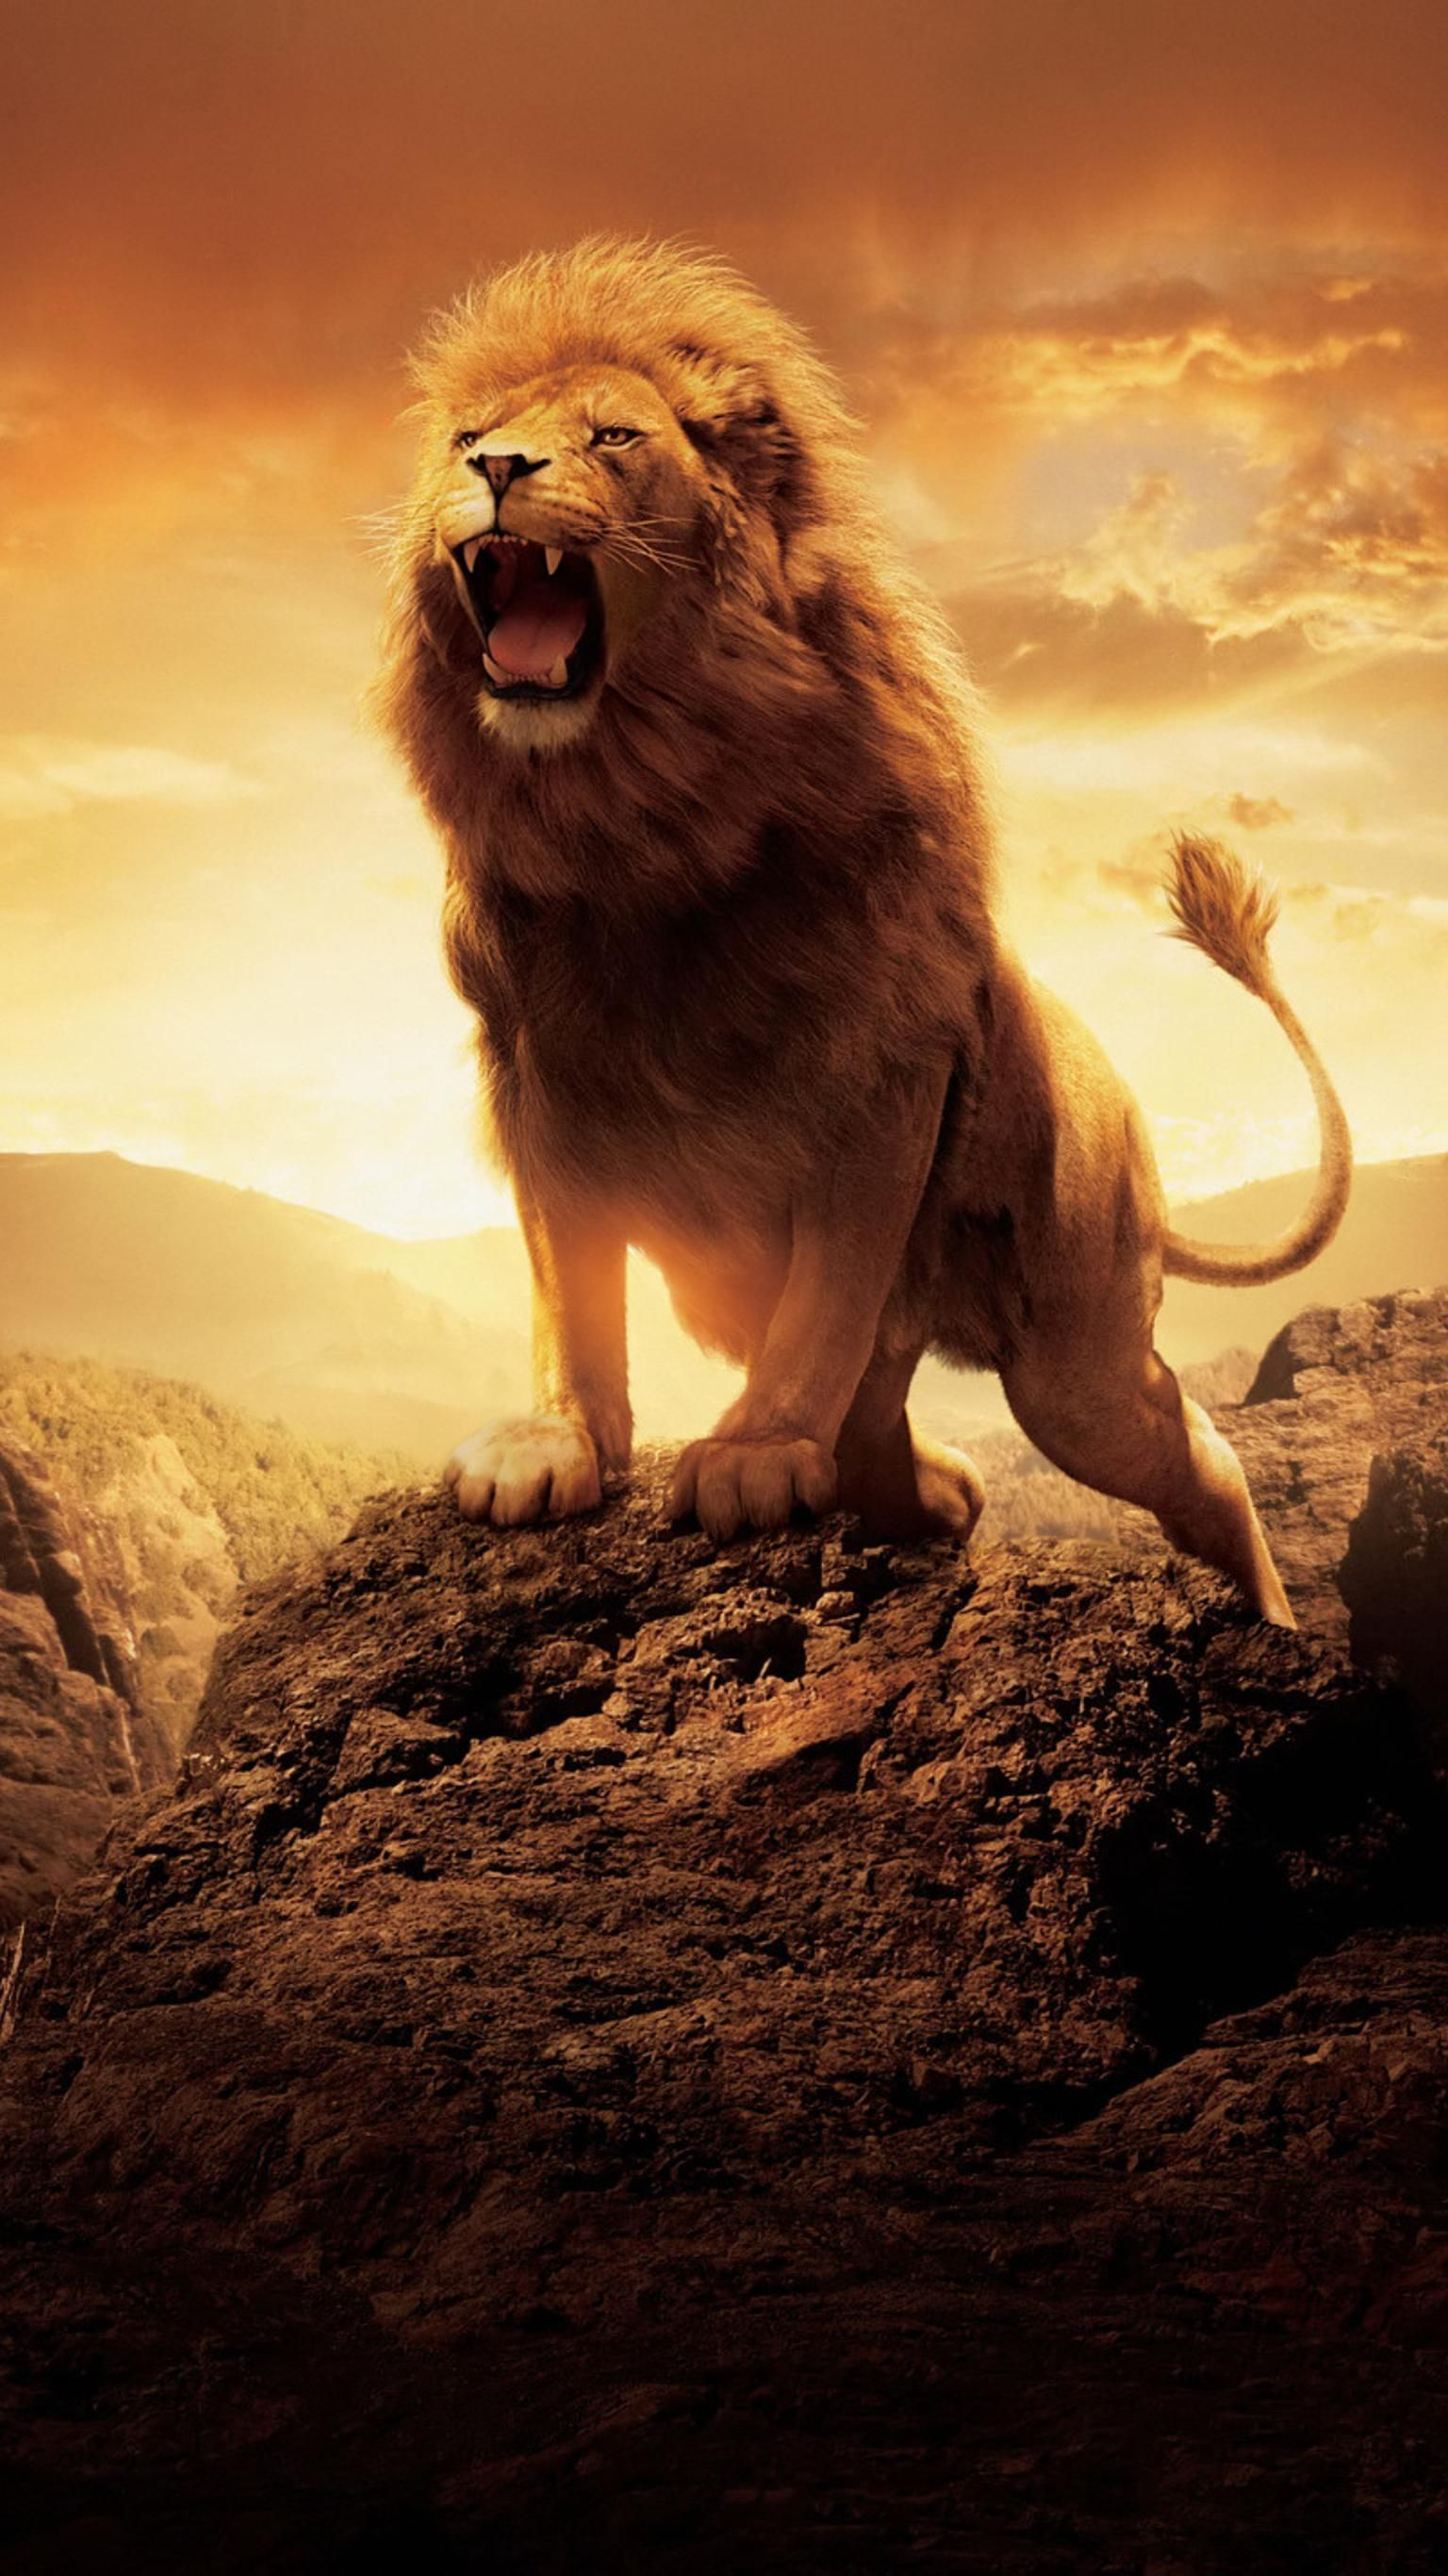 The Chronicles Of Narnia Lion Witch And Wardrobe 2005 Phone Wallpaper